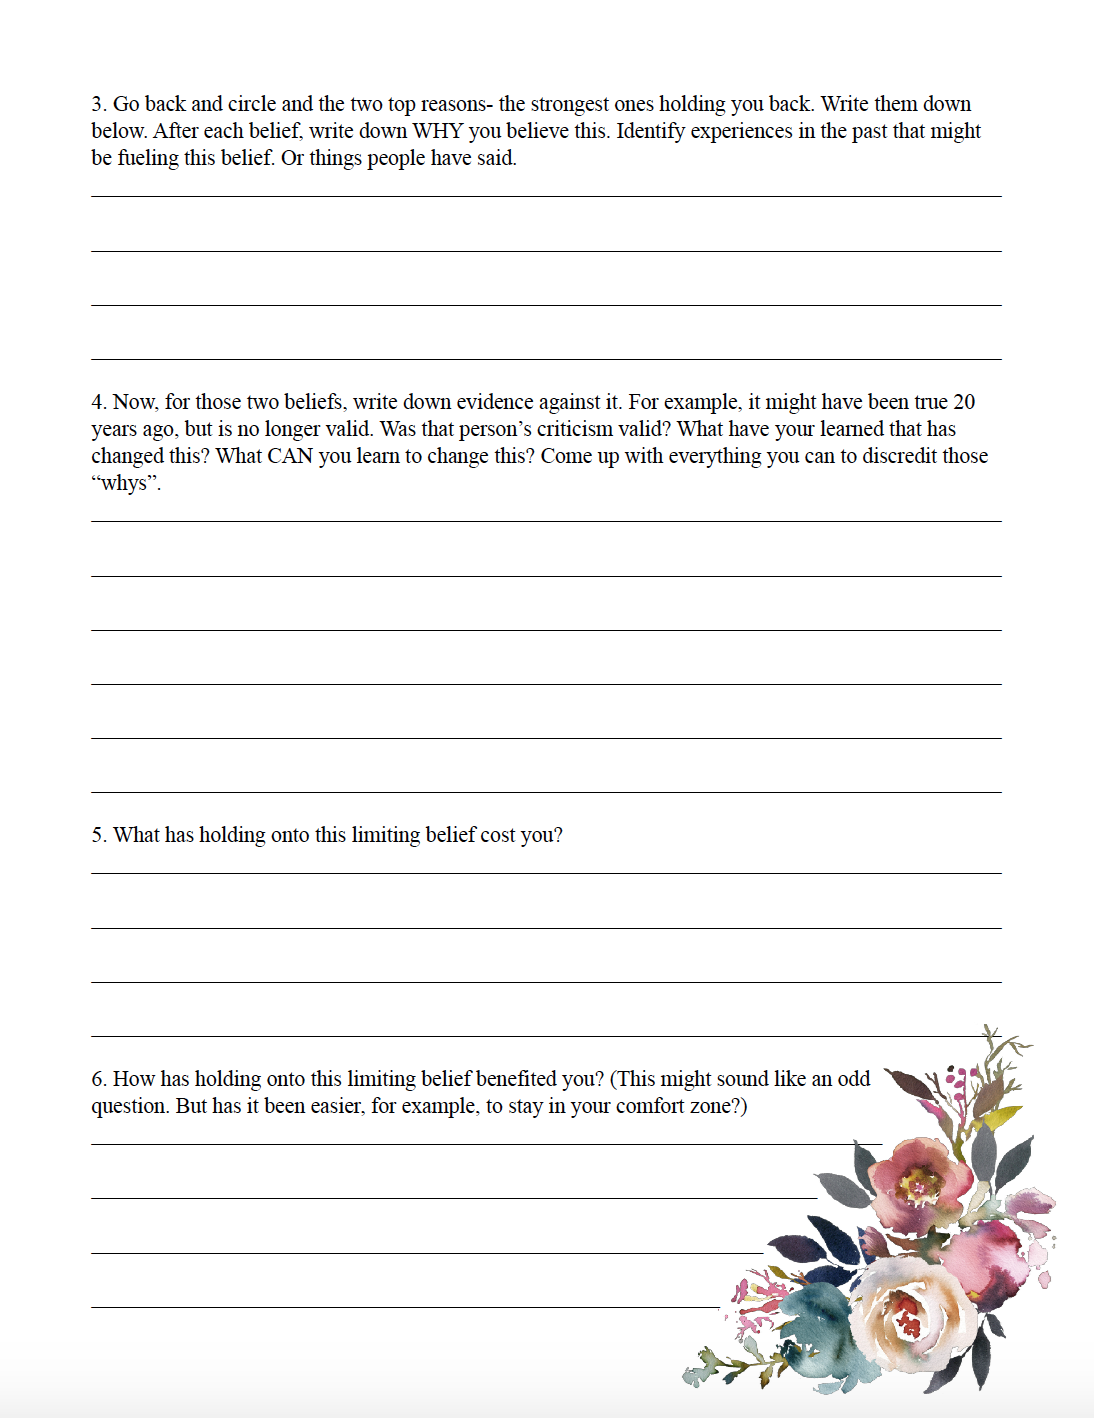 Limiting beliefs worksheet. What Everyone Ought to Know About Success. 10 Steps to Be More Persistent. Action steps you can take to reach your goals and be successful.